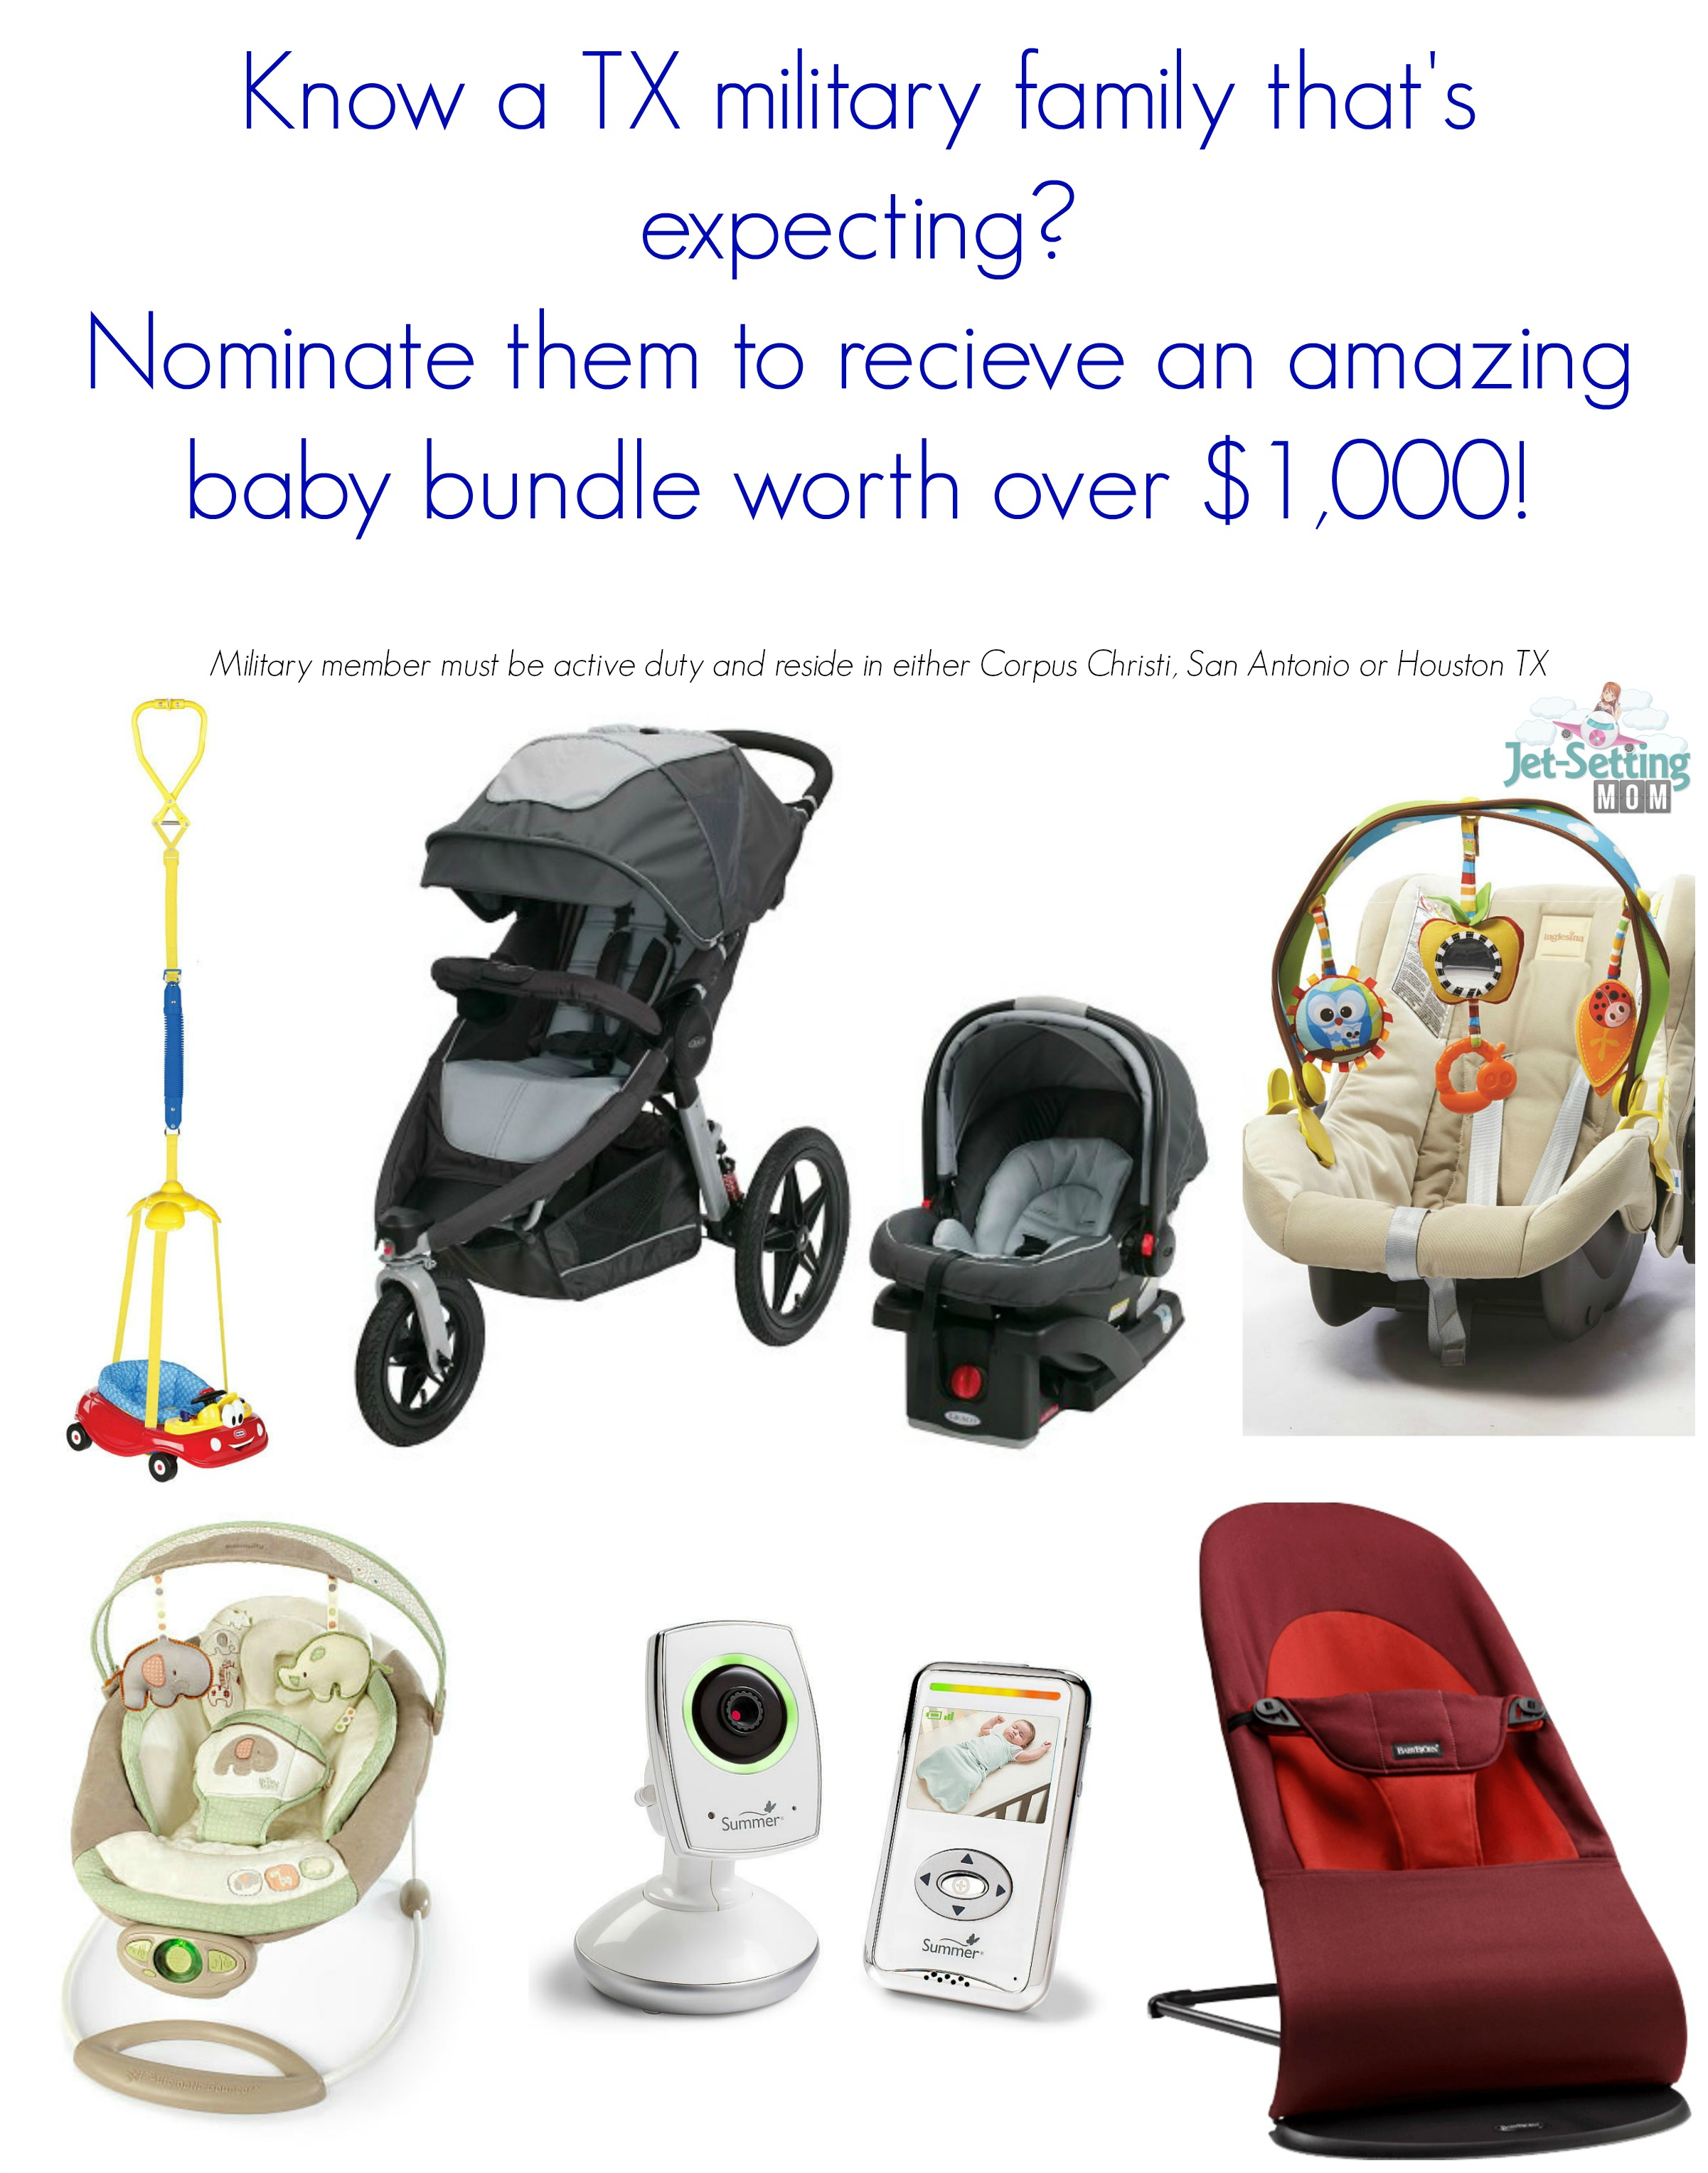 Nominate a family for Patriotic Parents ! #PatrioticParents #giveaway #military #baby #pregnancy #expecting #family #militaryfamily